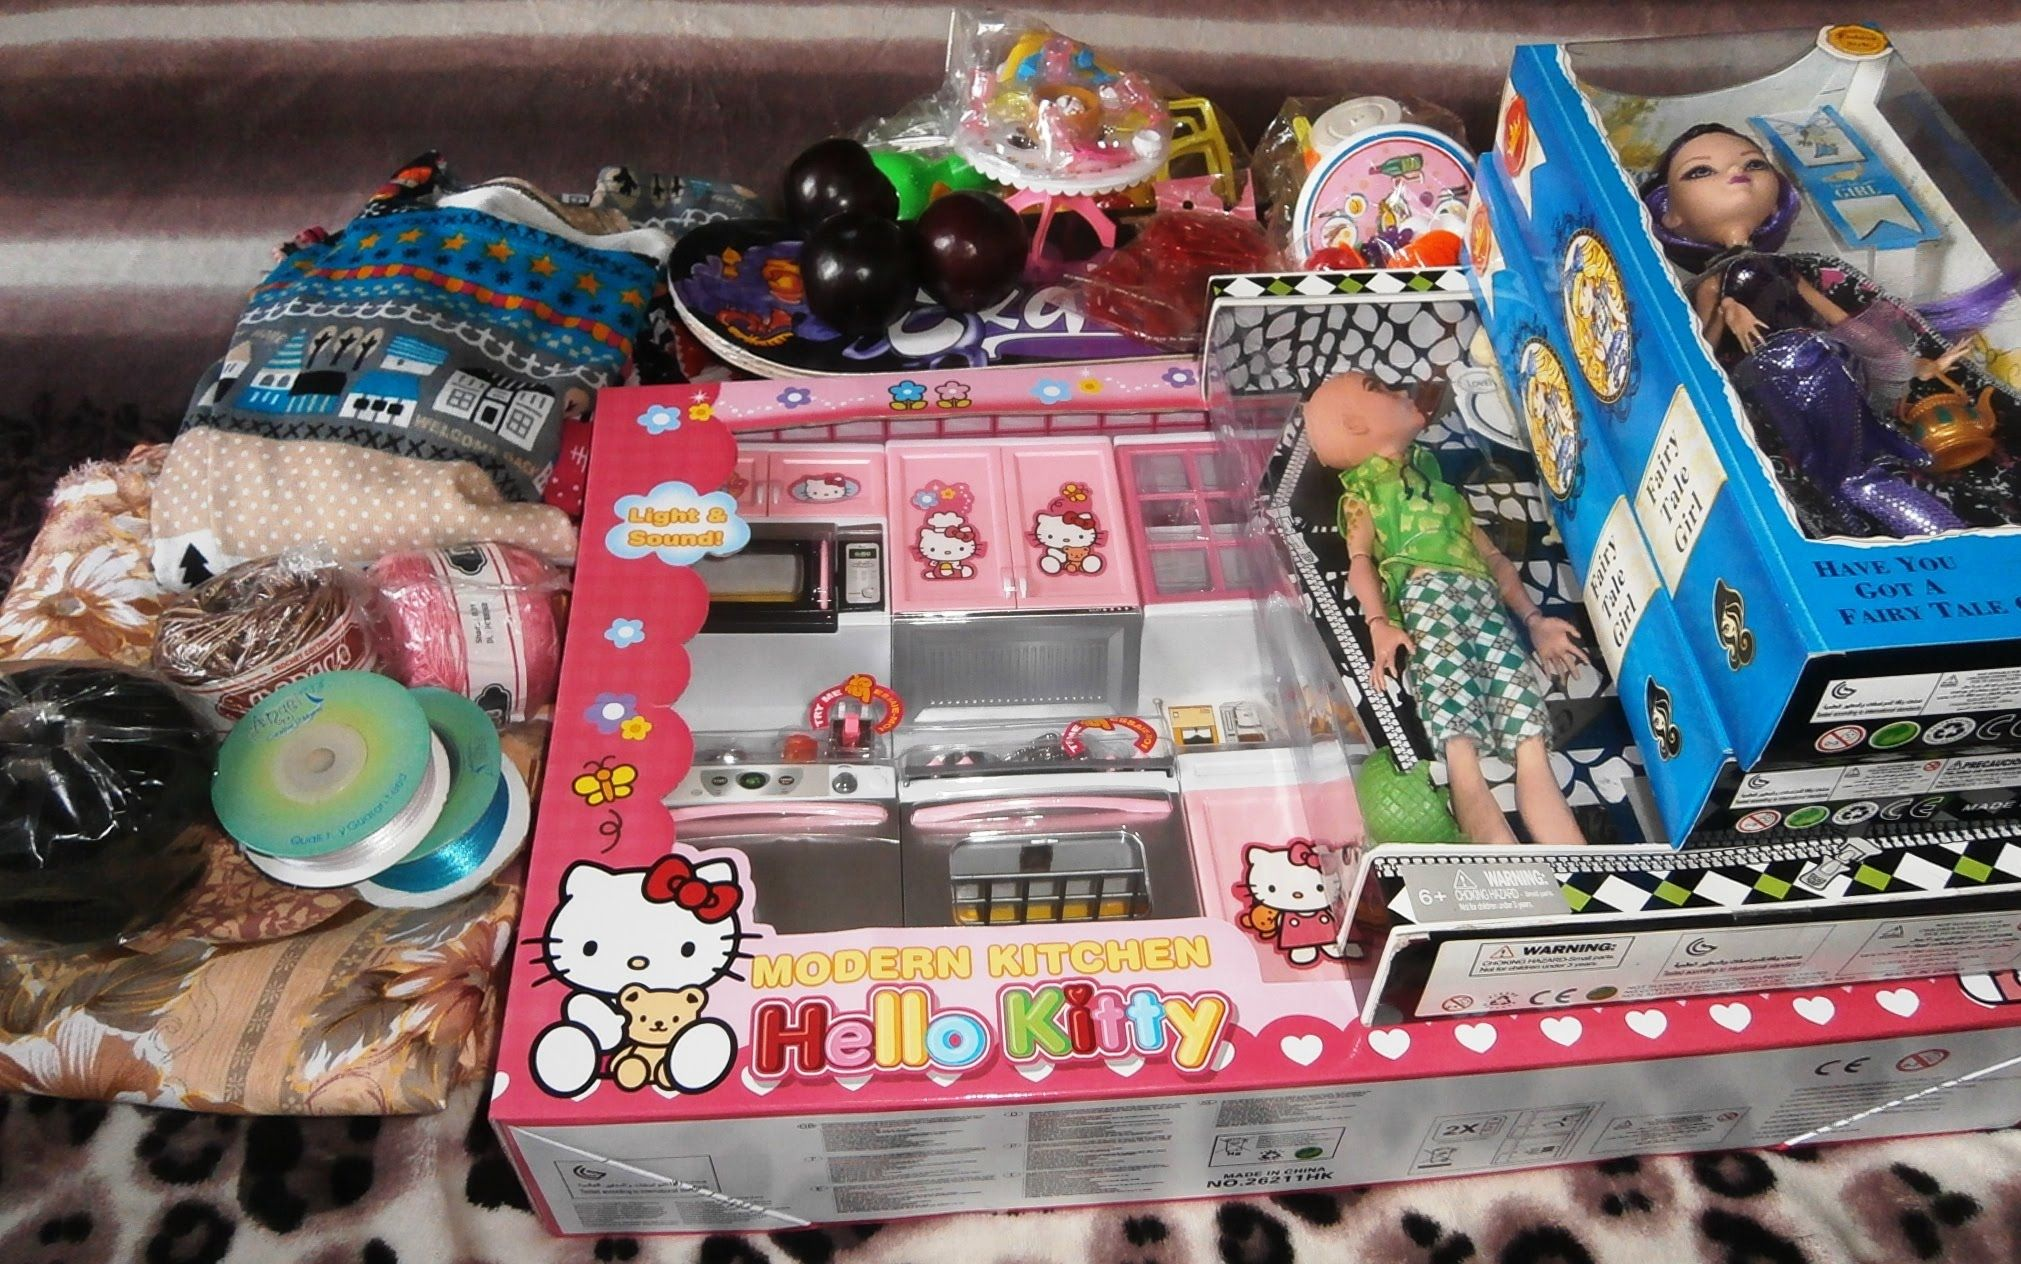 Divisoria Haul Doll Kitchen Set And More Shoppers Delight Videos